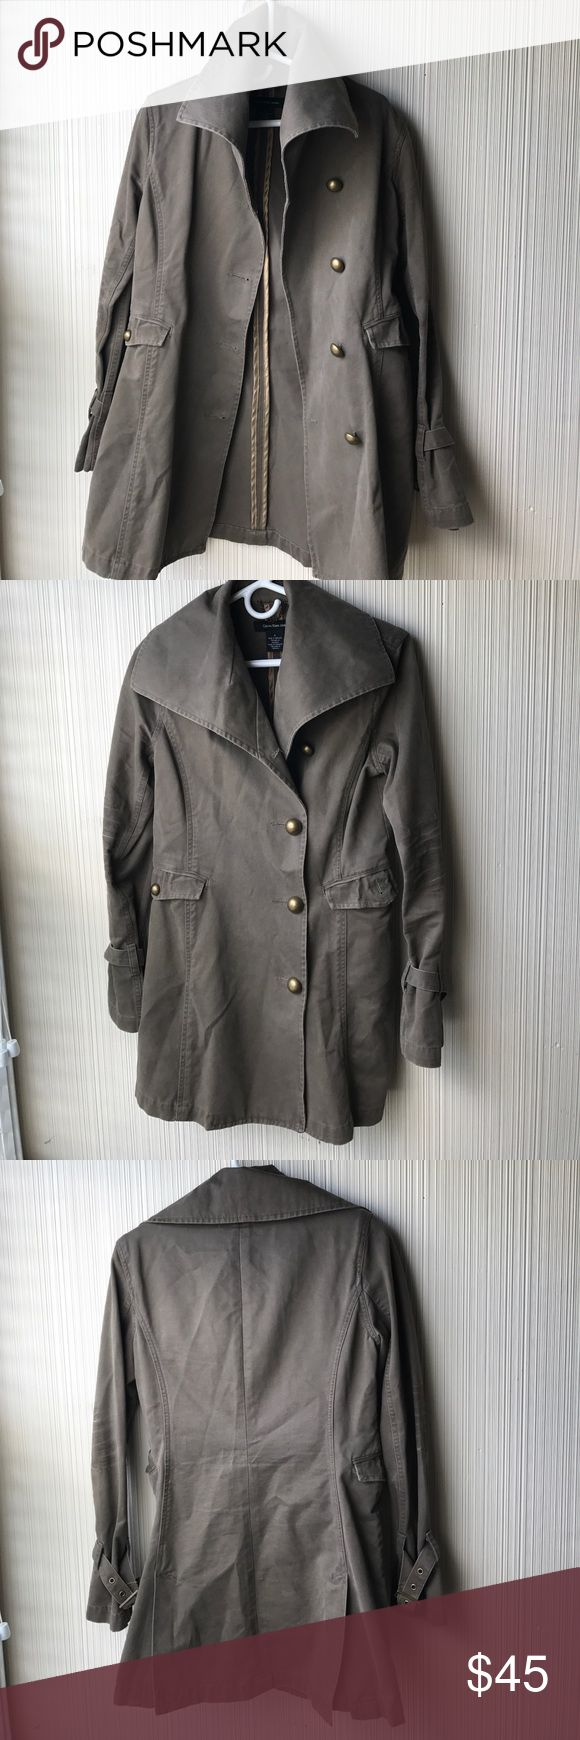 Calvin Klein Jeans Cotton Trench This jacket is amazing. Gorgeous dark taupe color with bronze hardware. Factory distressing on the sleeves. Oversized collar and double vent back flap. So chic and perfect for fall. Calvin Klein Jeans Jackets & Coats